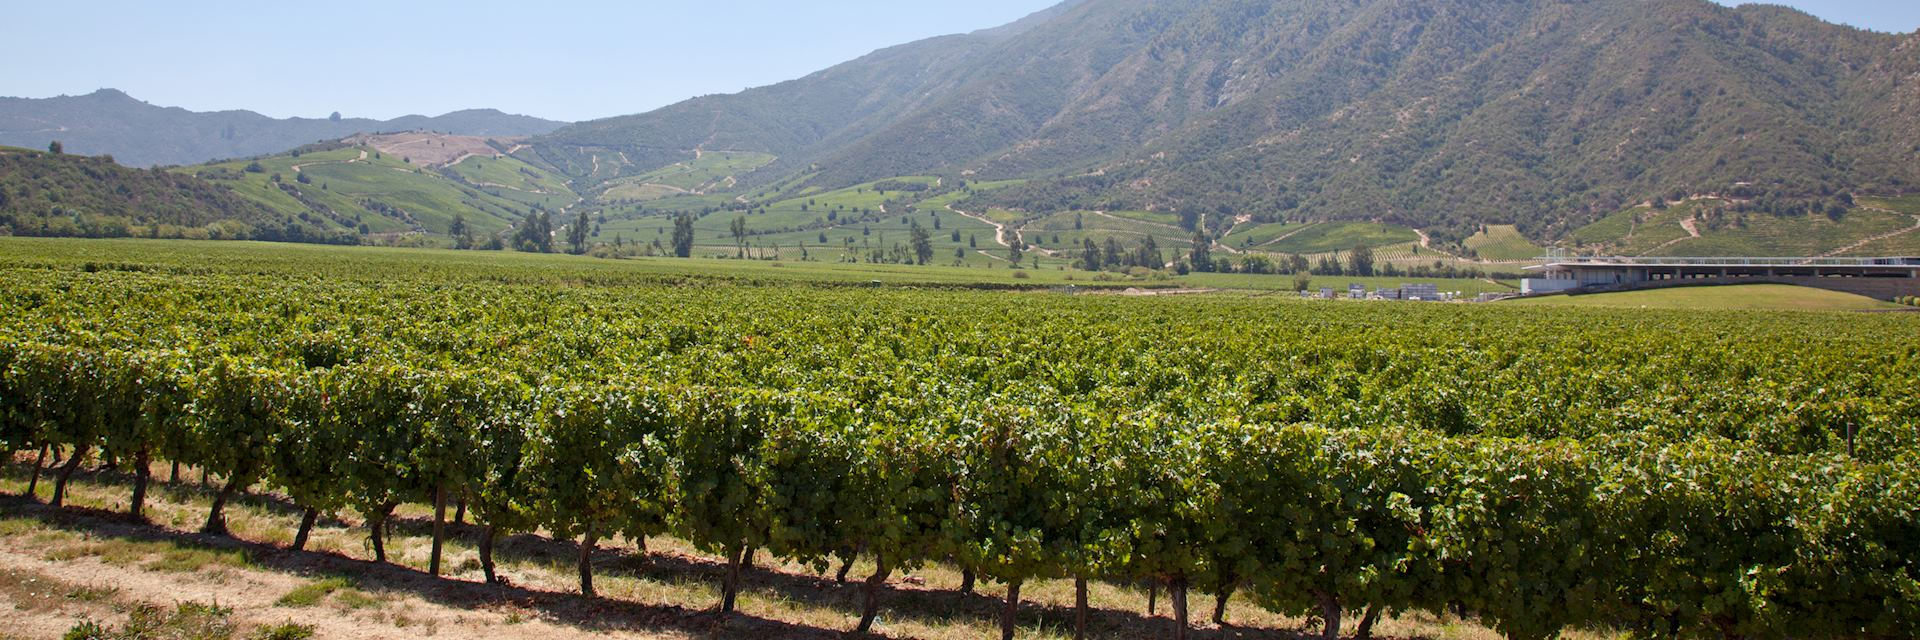 Vineyard in the Colchagua Valley